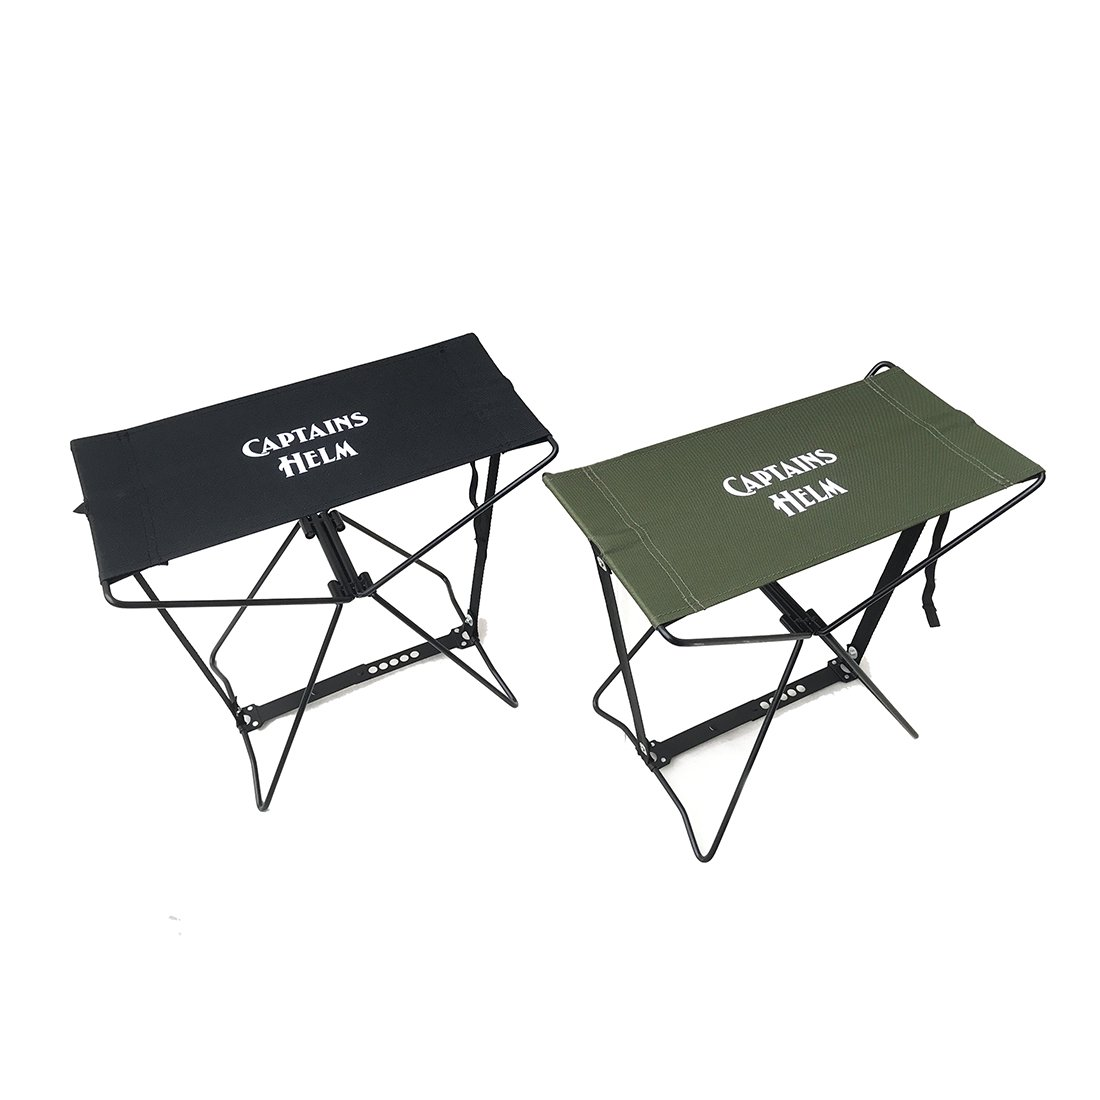 CAPTAINS HELM    #FOLDING CAMP STOOL